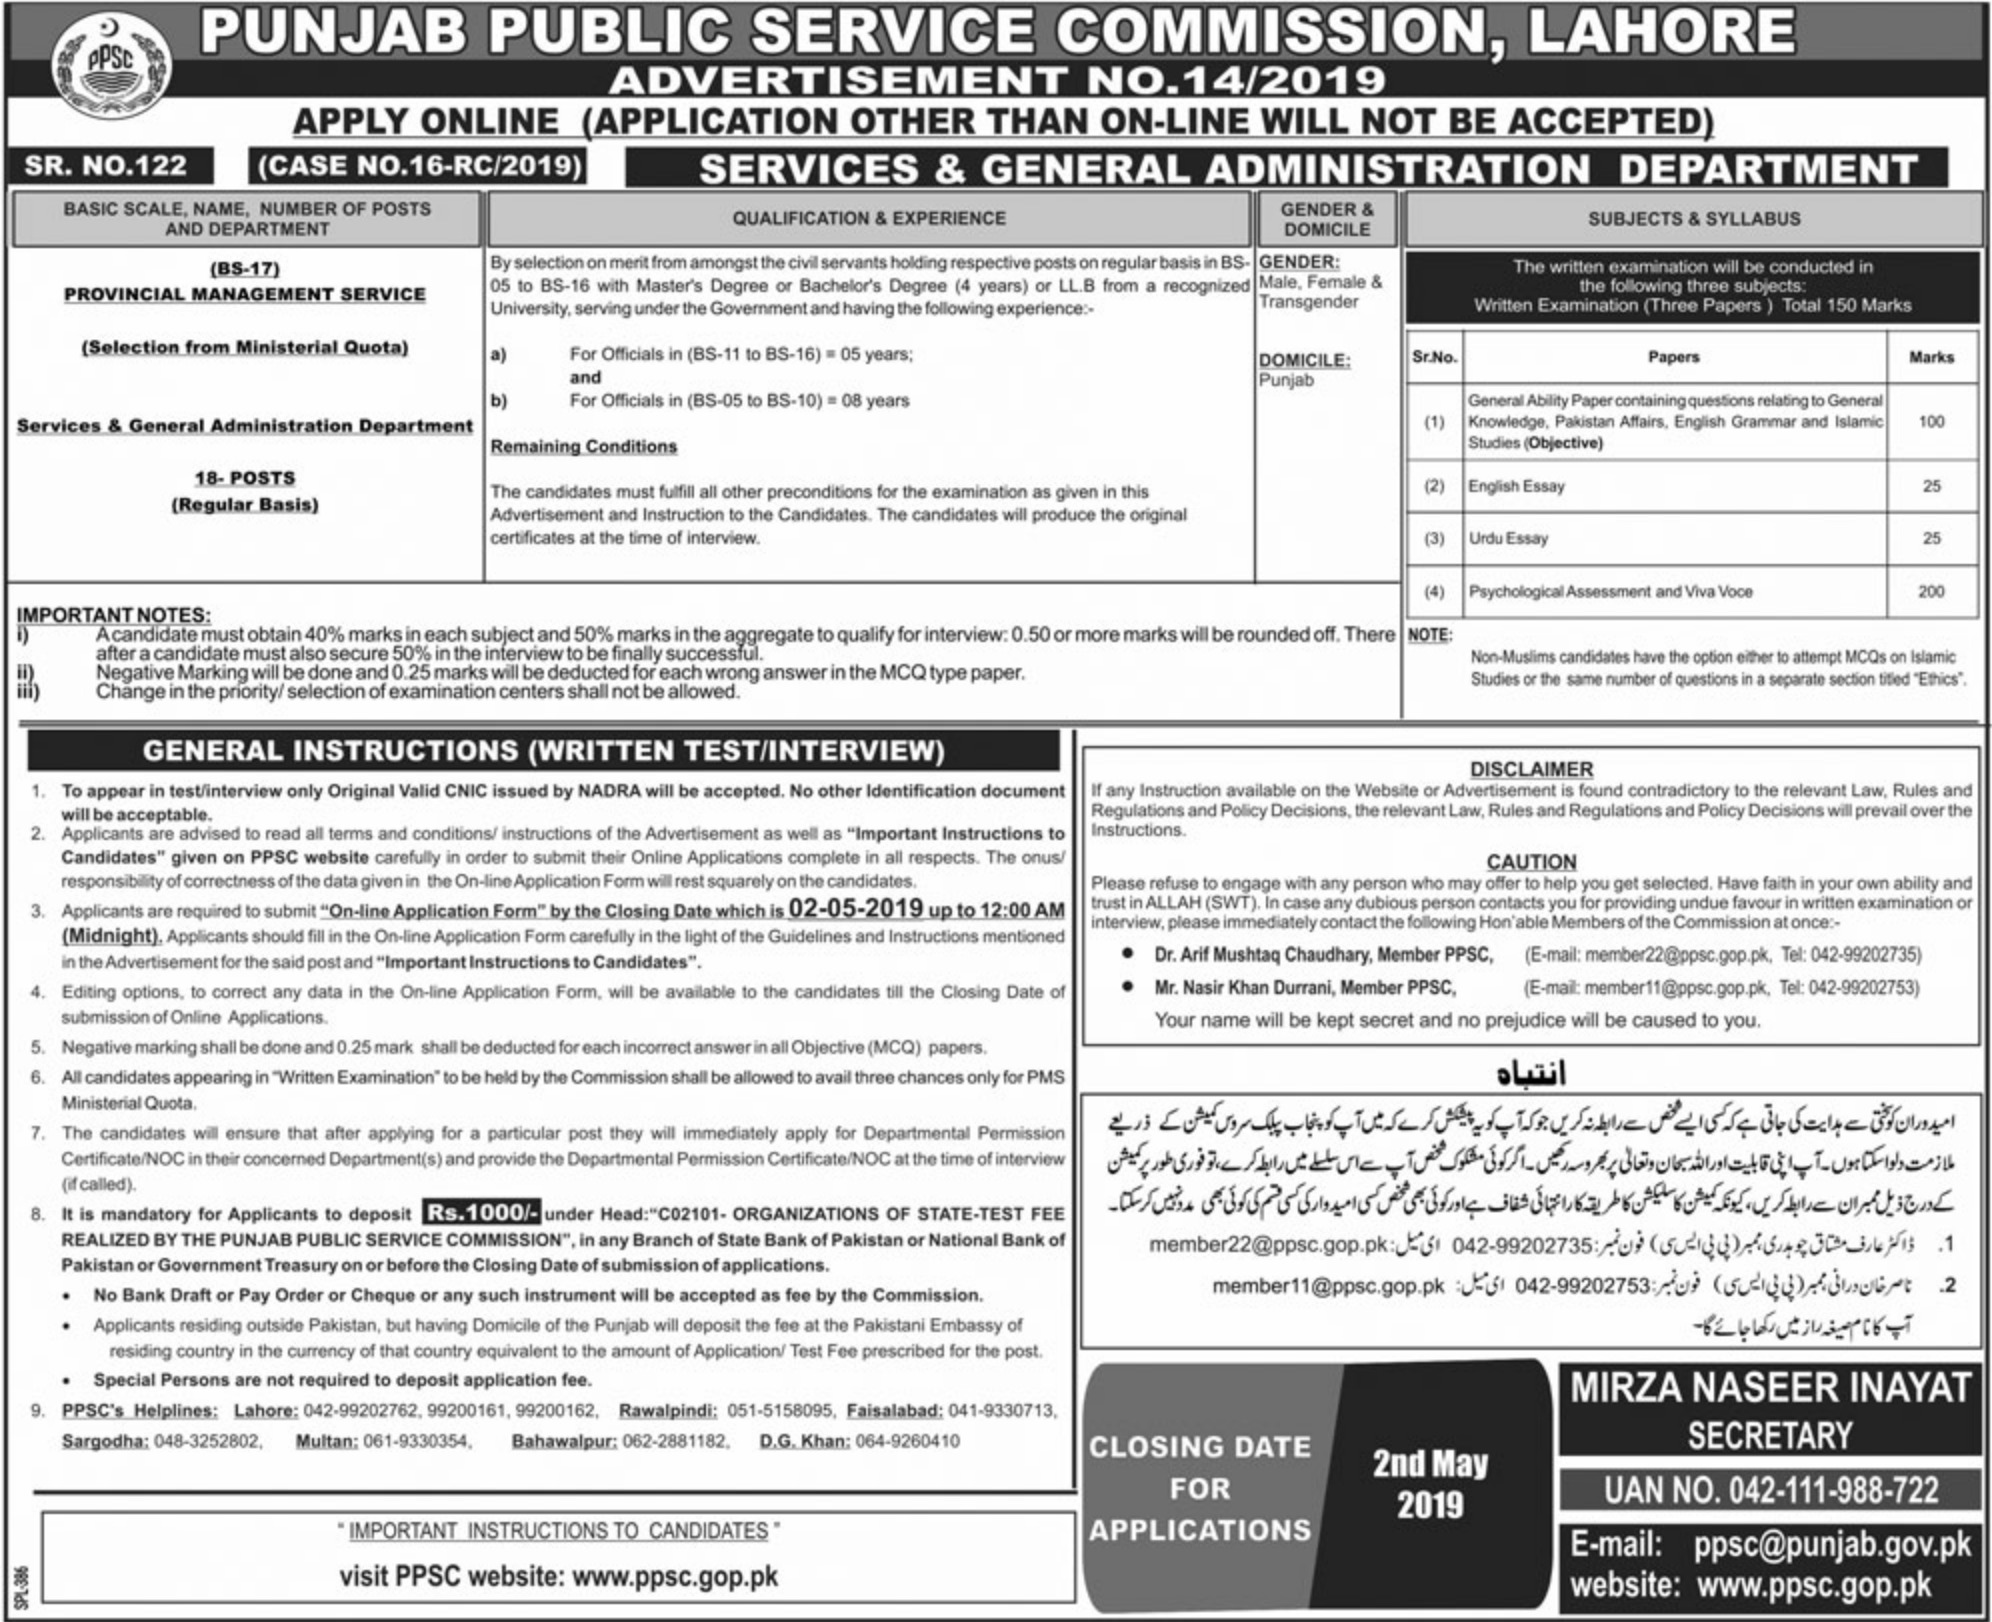 PPSC Jobs 2019 Provincial Management Service PMS S&GAD Punjab Latest